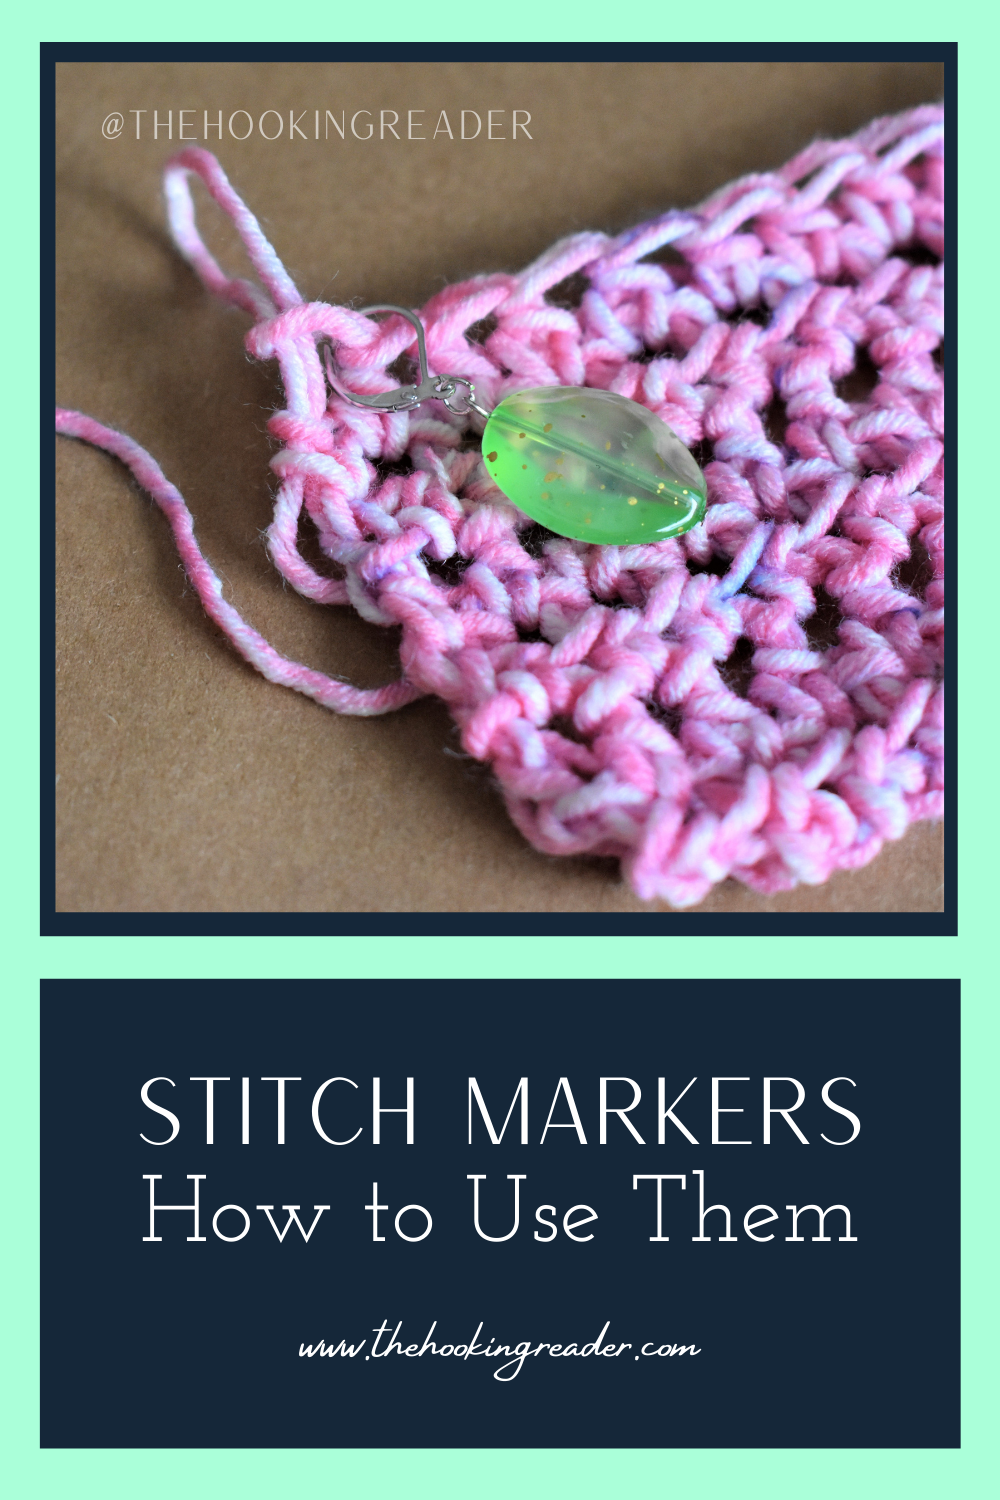 Stitch Markers and How to Use Them